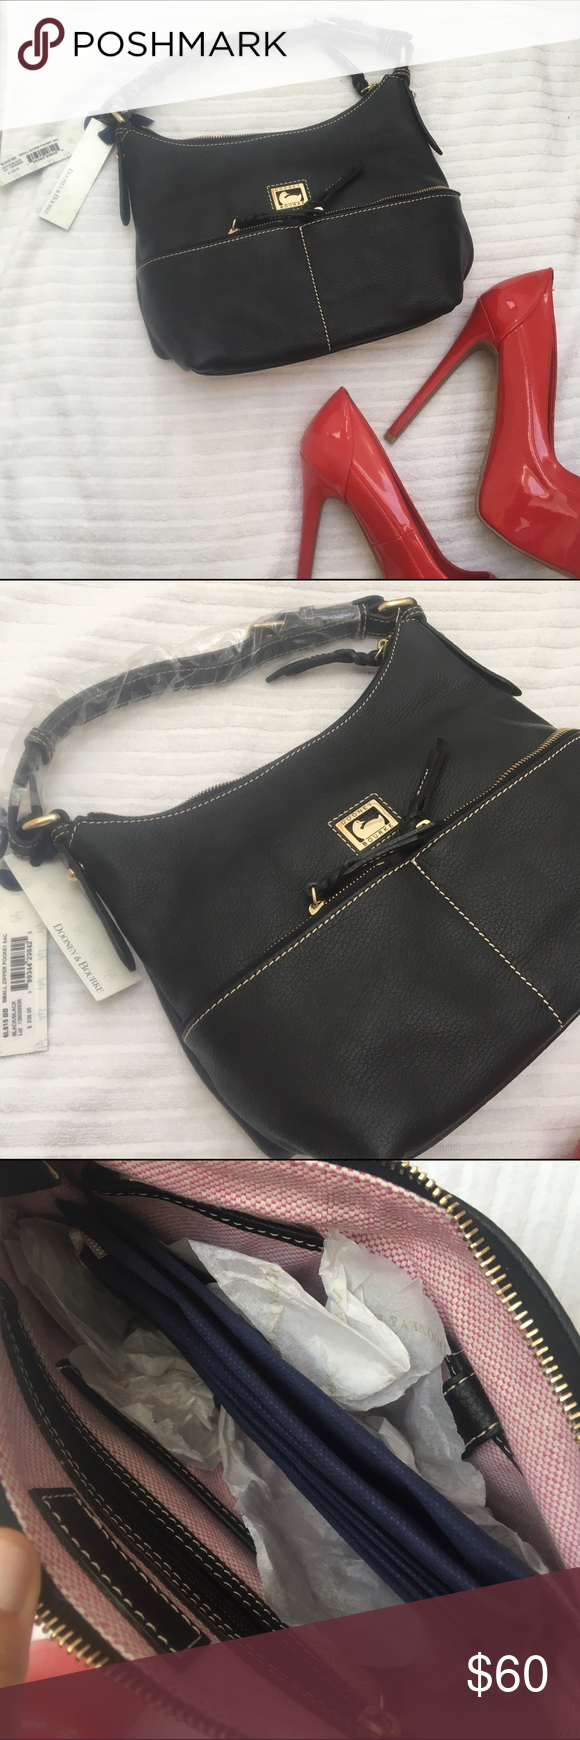 NWT Small Dooney and Burke Bag Brand new, still in packaging! Comes with tags attached, and dust bag included. Beautiful black leather, no damage at all! Retails for $238. Measures 13 inches wide and 9 inches deep. Need this gone!   Closet details Same day shipping if purchased before 4pm , excluding weekend and holidays no trades  no holds  offers only through offer button  amazing bundle deals can be made with or without bundle feature  Happy poshing!  Dooney & Bourke Bags Shoulder Bags